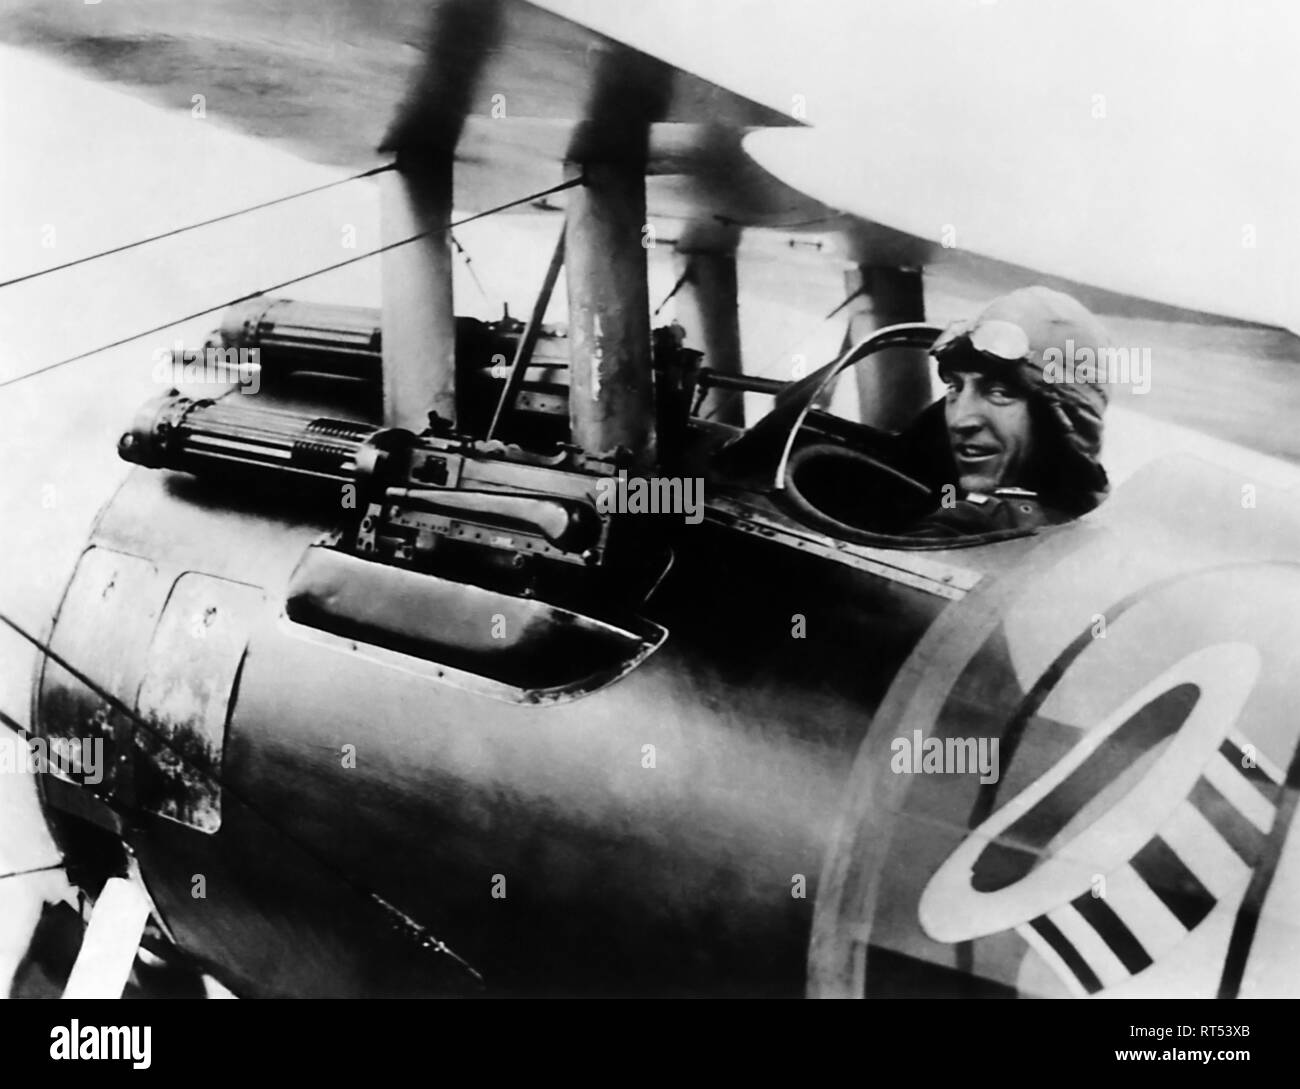 American history photograph of Eddie Rickenbacker on board his Spad biplane. - Stock Image